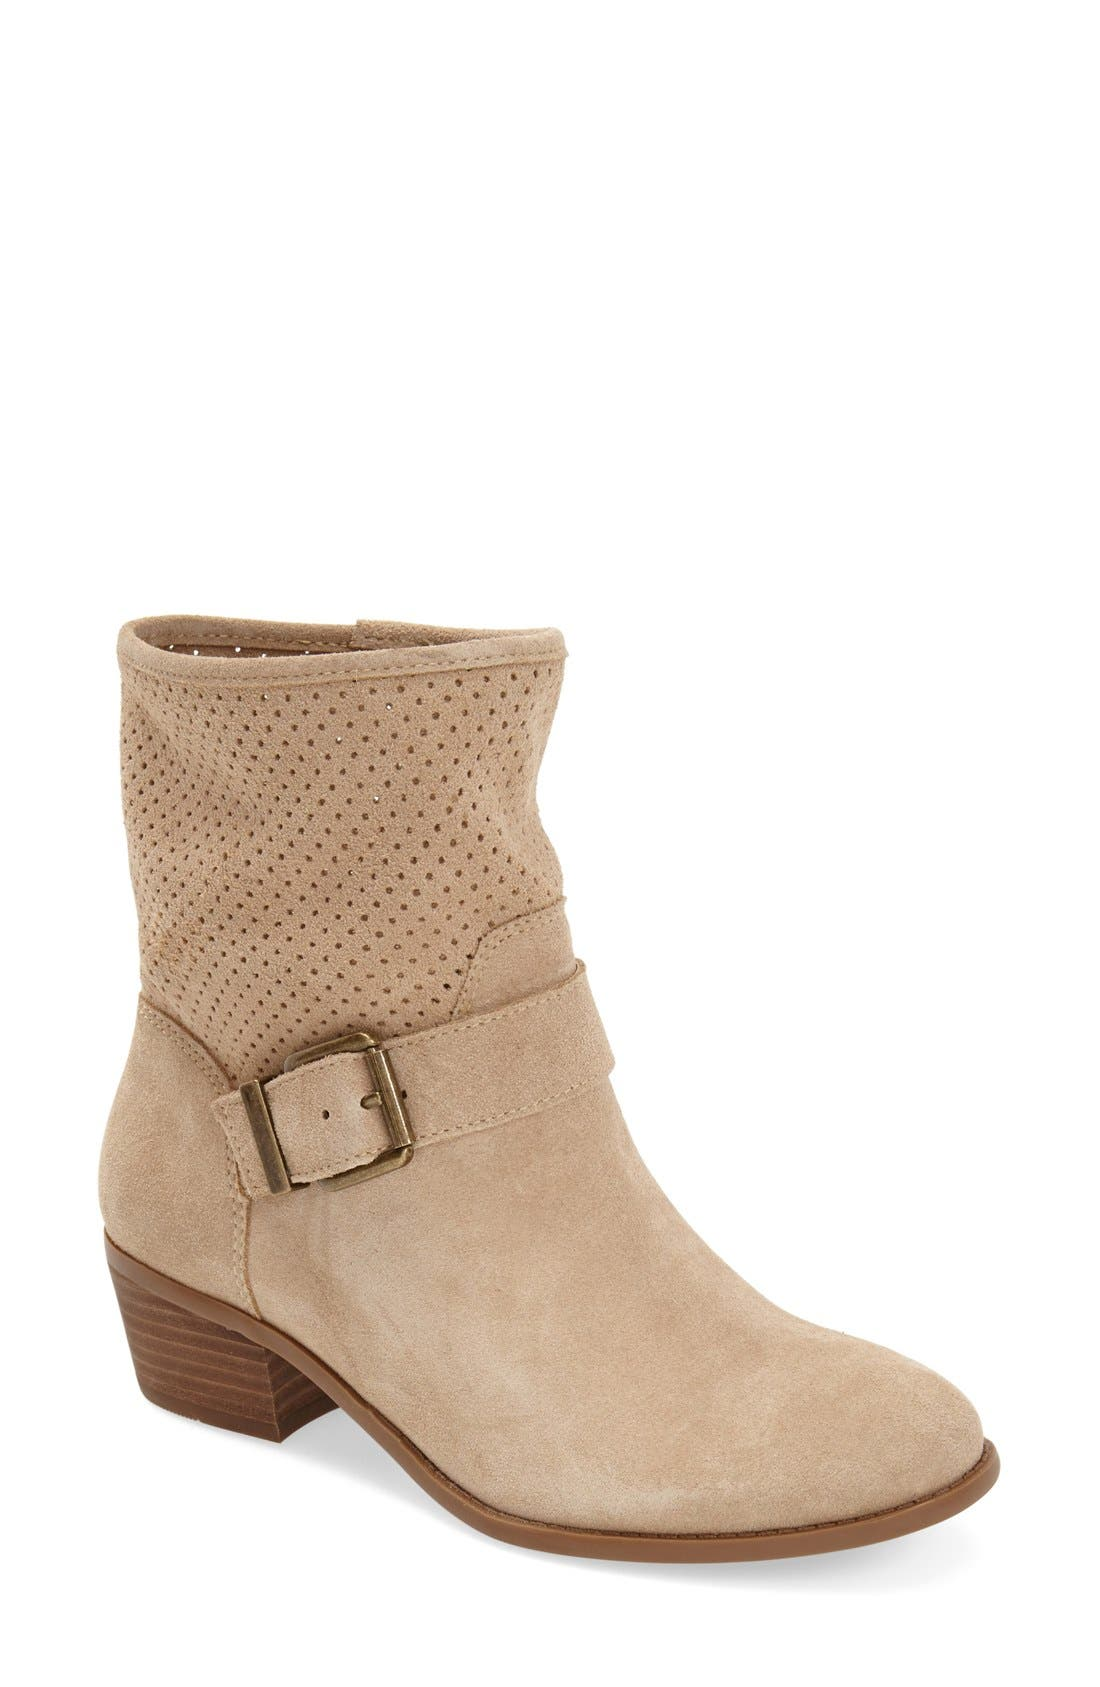 Main Image - Sole Society 'Sola' Perforated Suede Western Bootie (Women)